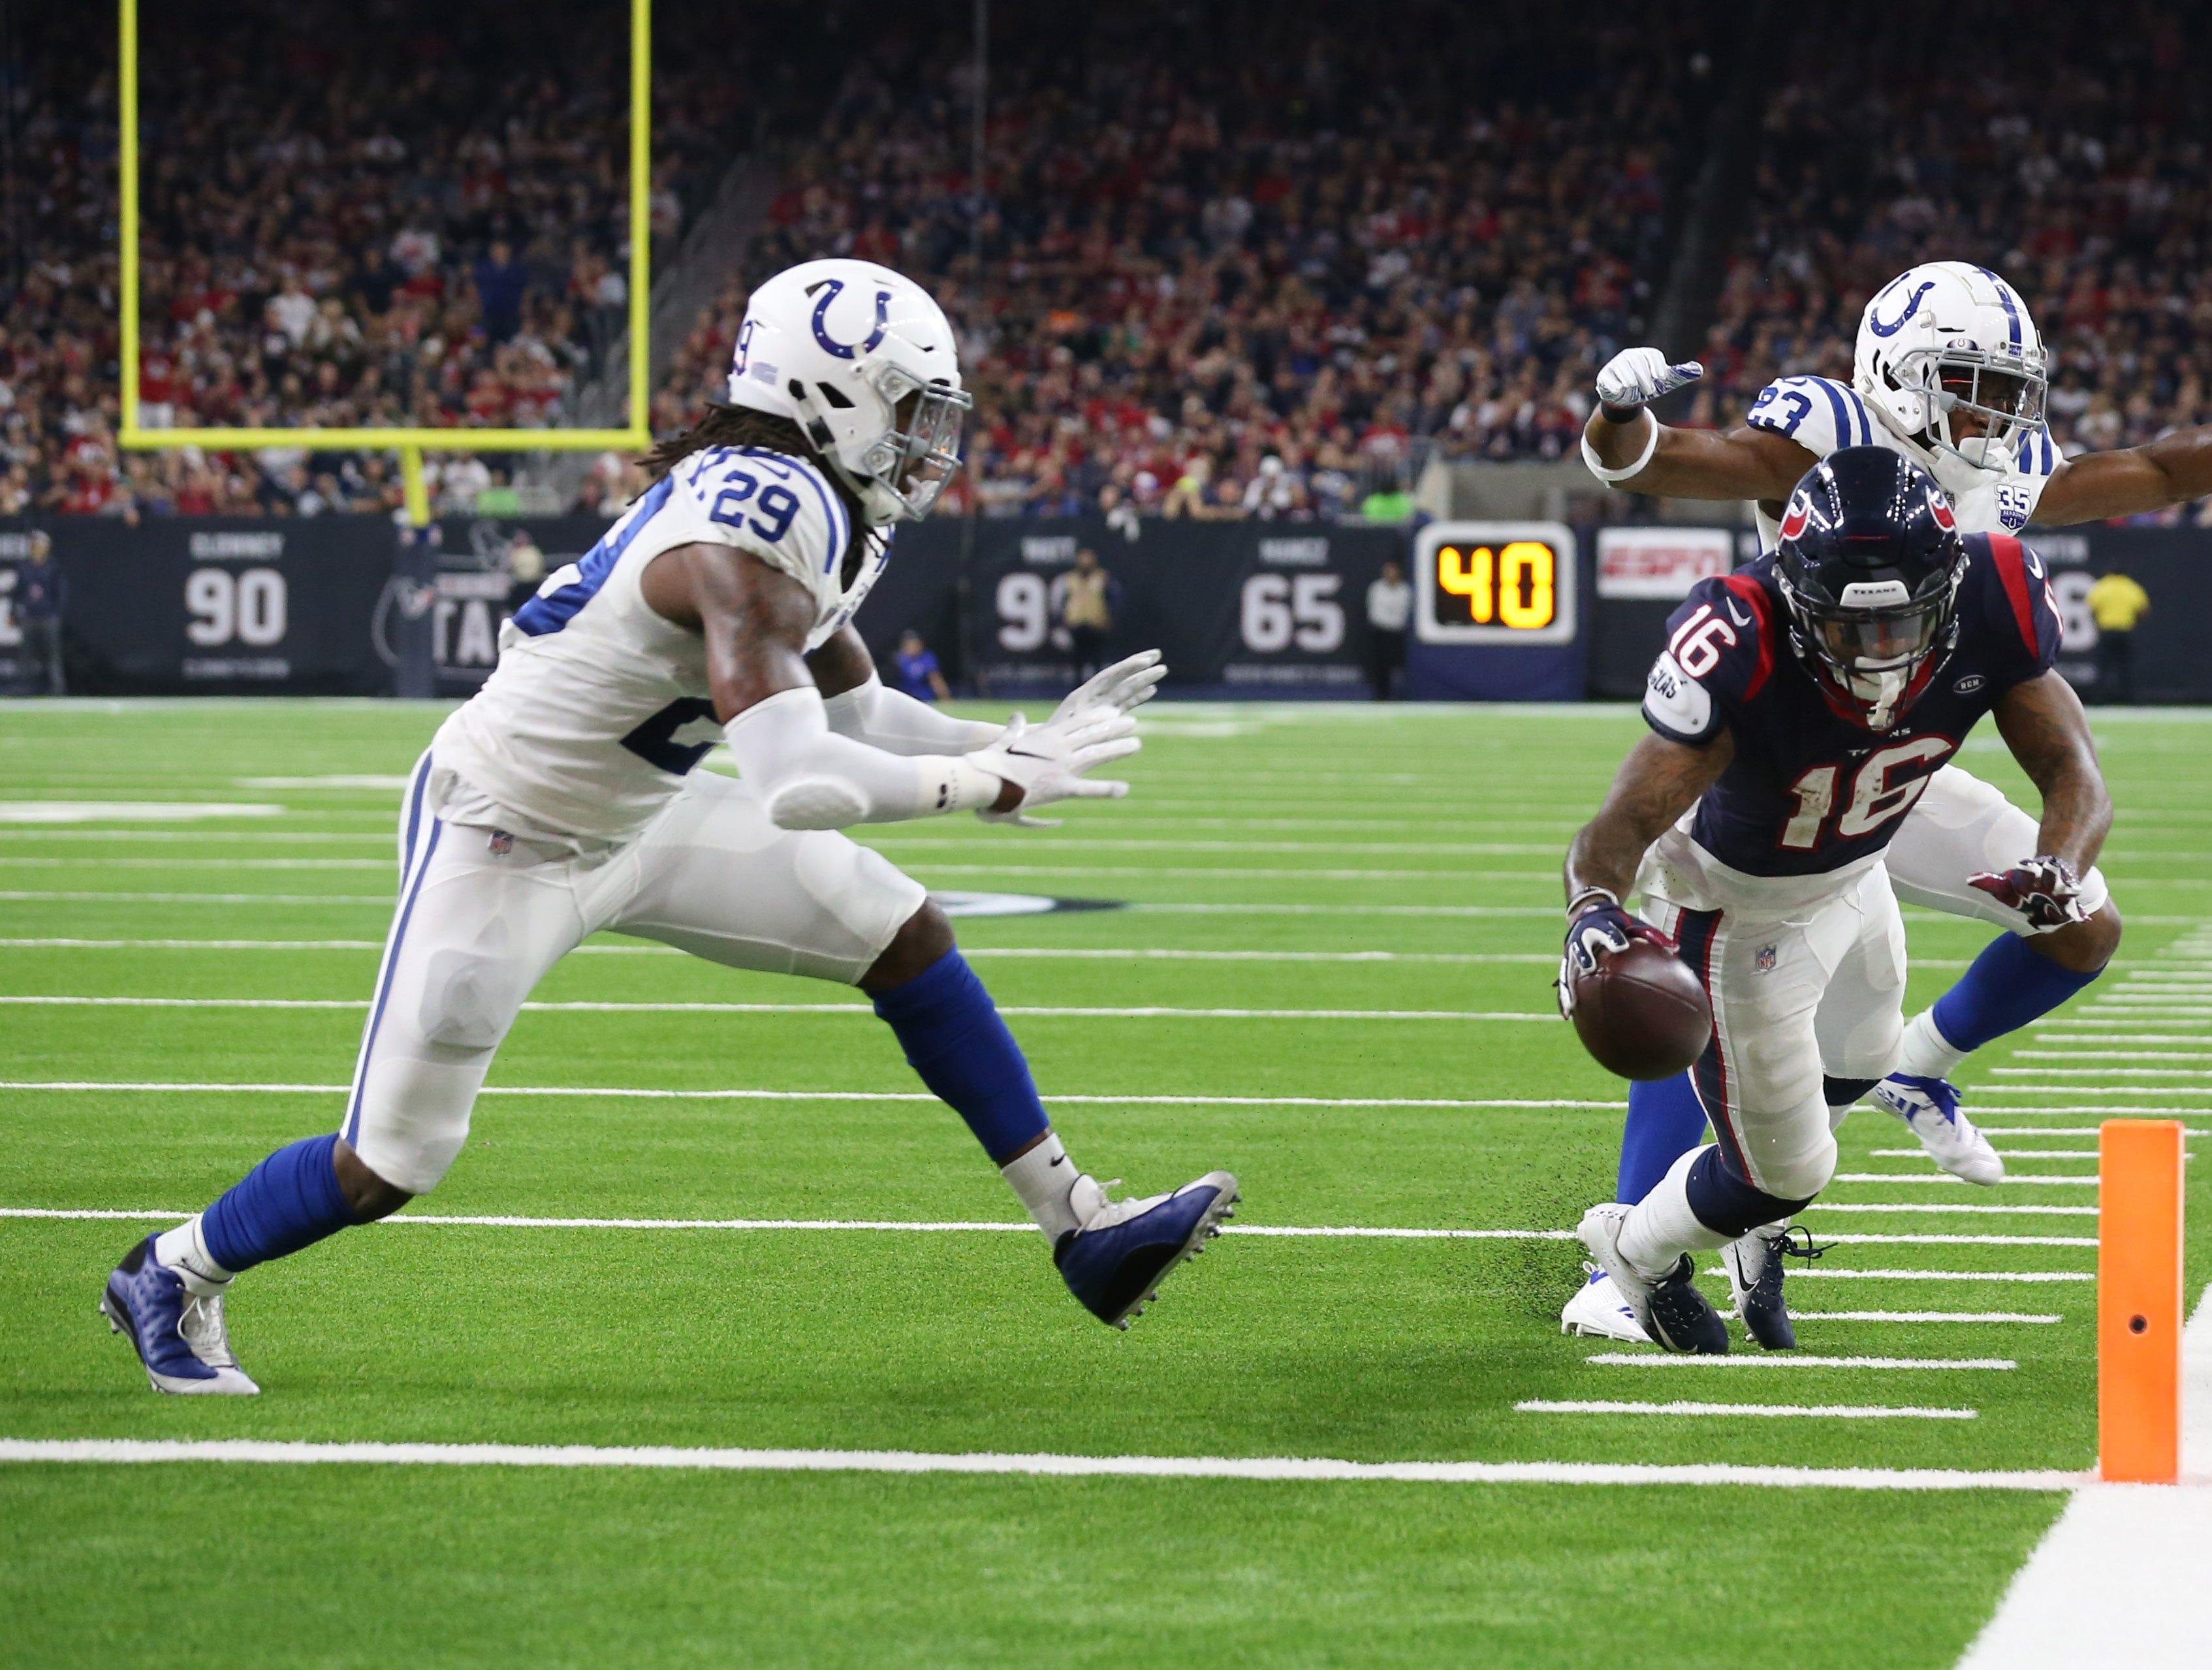 Houston Texans wide receiver Keke Coutee (16) scores a touchdown against the Indianapolis Colts in the second half at NRG Stadium.